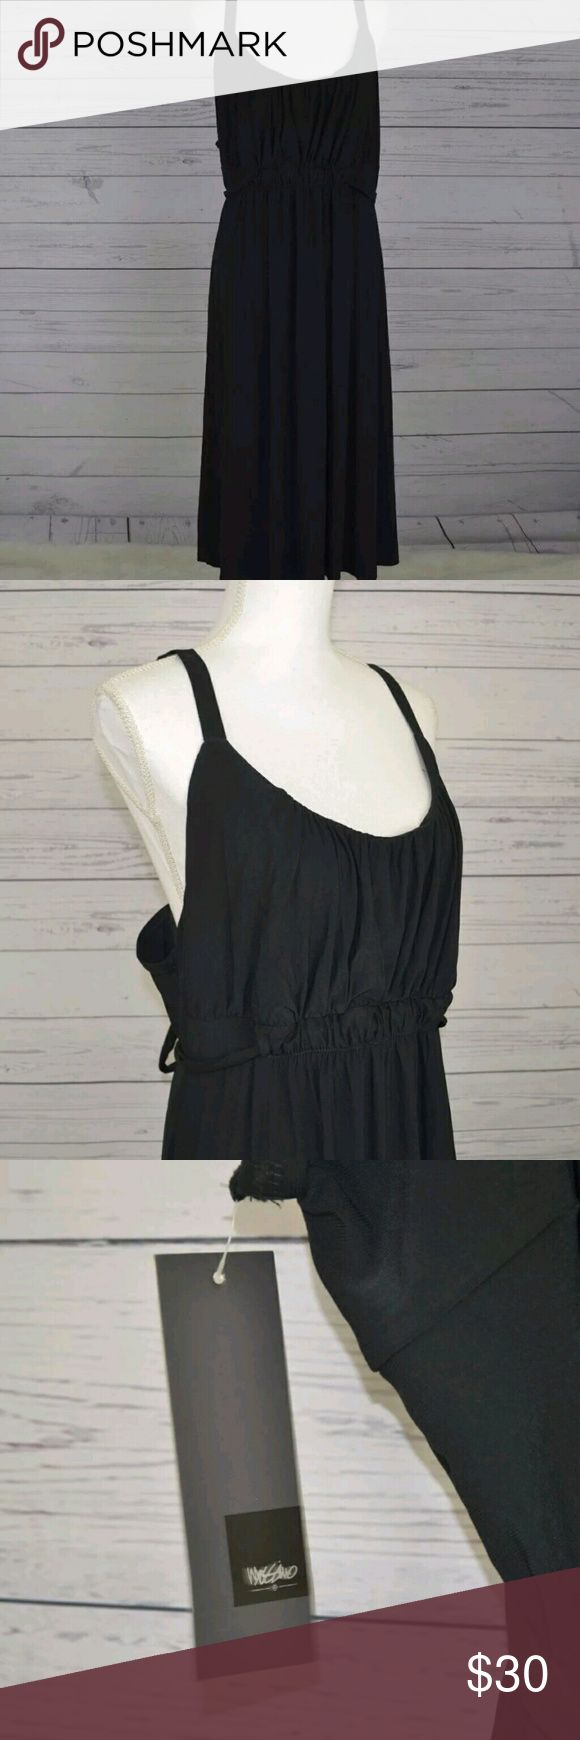 """Mossimo  Women's black dress plus size 28W 30w Brand: Mossimo  Condition: New with tag  Color: Black Ebony  Materials: 95% Polyester, 5% Spandex  Origin: United Arab Emirates  Size:28W/30W   Measurements:  Chest (Armpit to armpit): 26""""  Length (Shoulder to hem): 51"""" (plus or minus with adjustable strap)   *Measurements are all approximate.   Note: Colors and or hues may different due to monitors, computer and or device used to view this item.  This item is shipped from a smoke-free home…"""